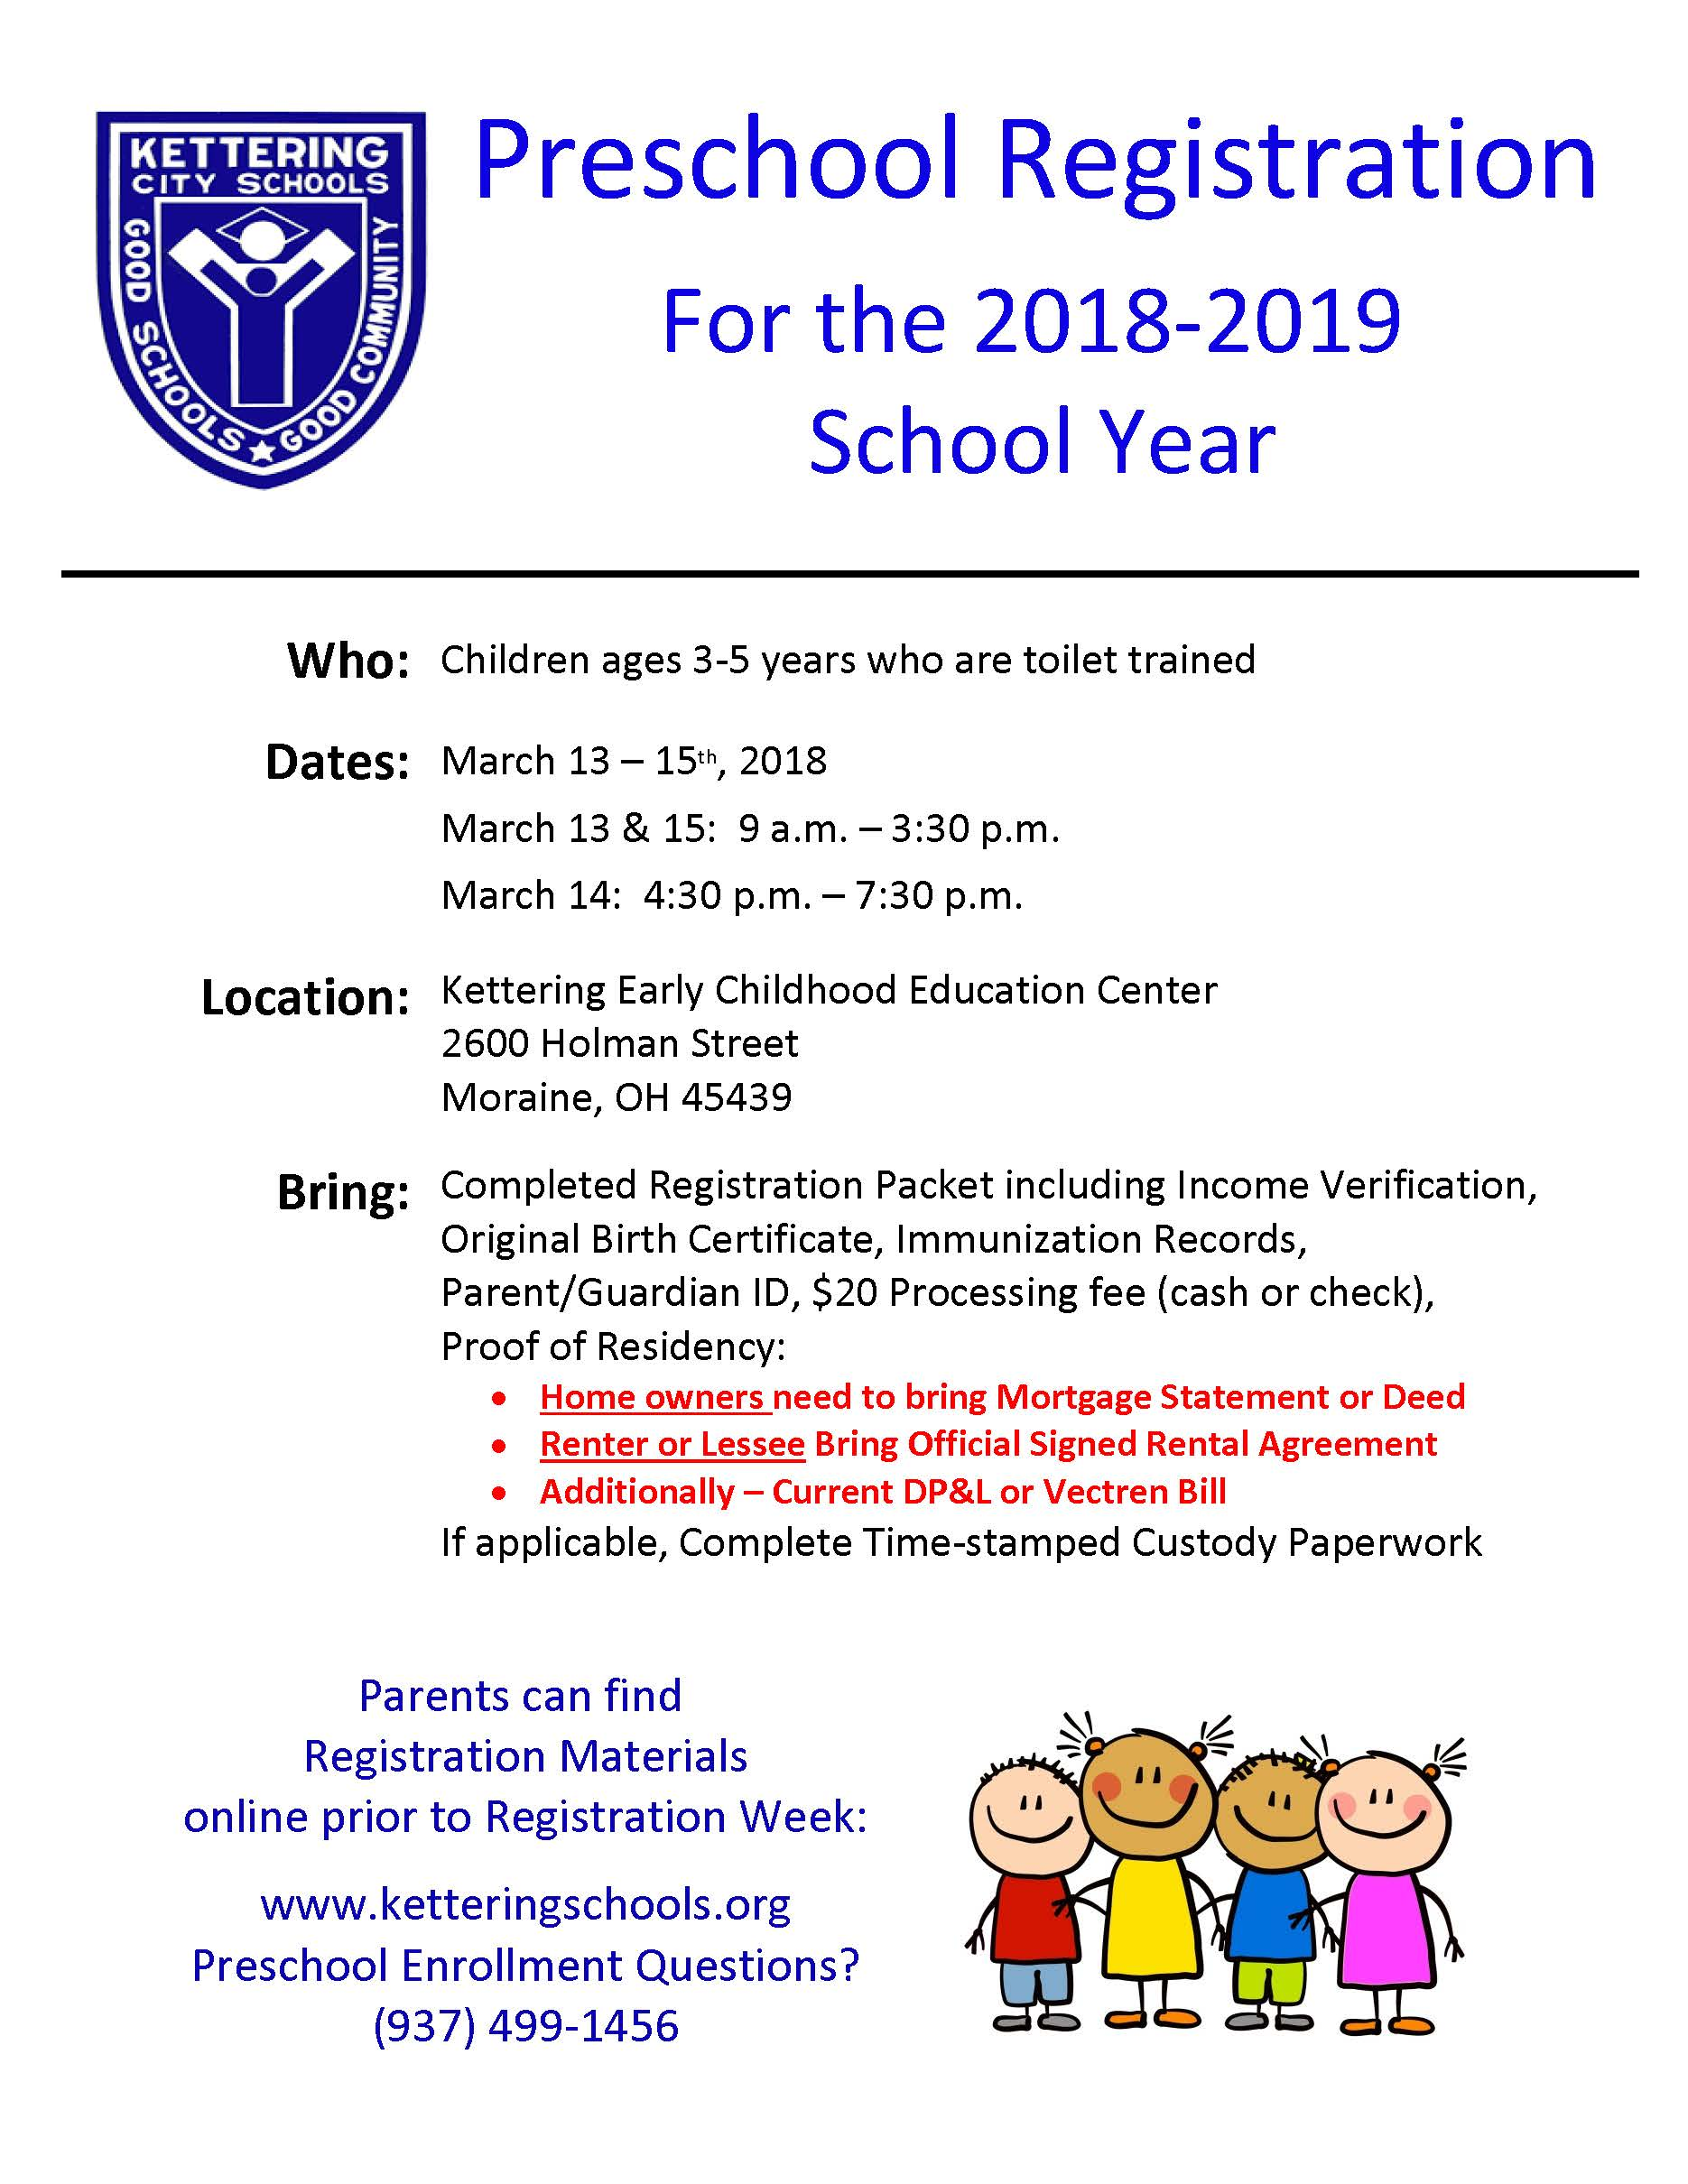 Preschool registration for 2018 19 school year set for march 13 15 kettering city school district integrated preschool program 1betcityfo Image collections